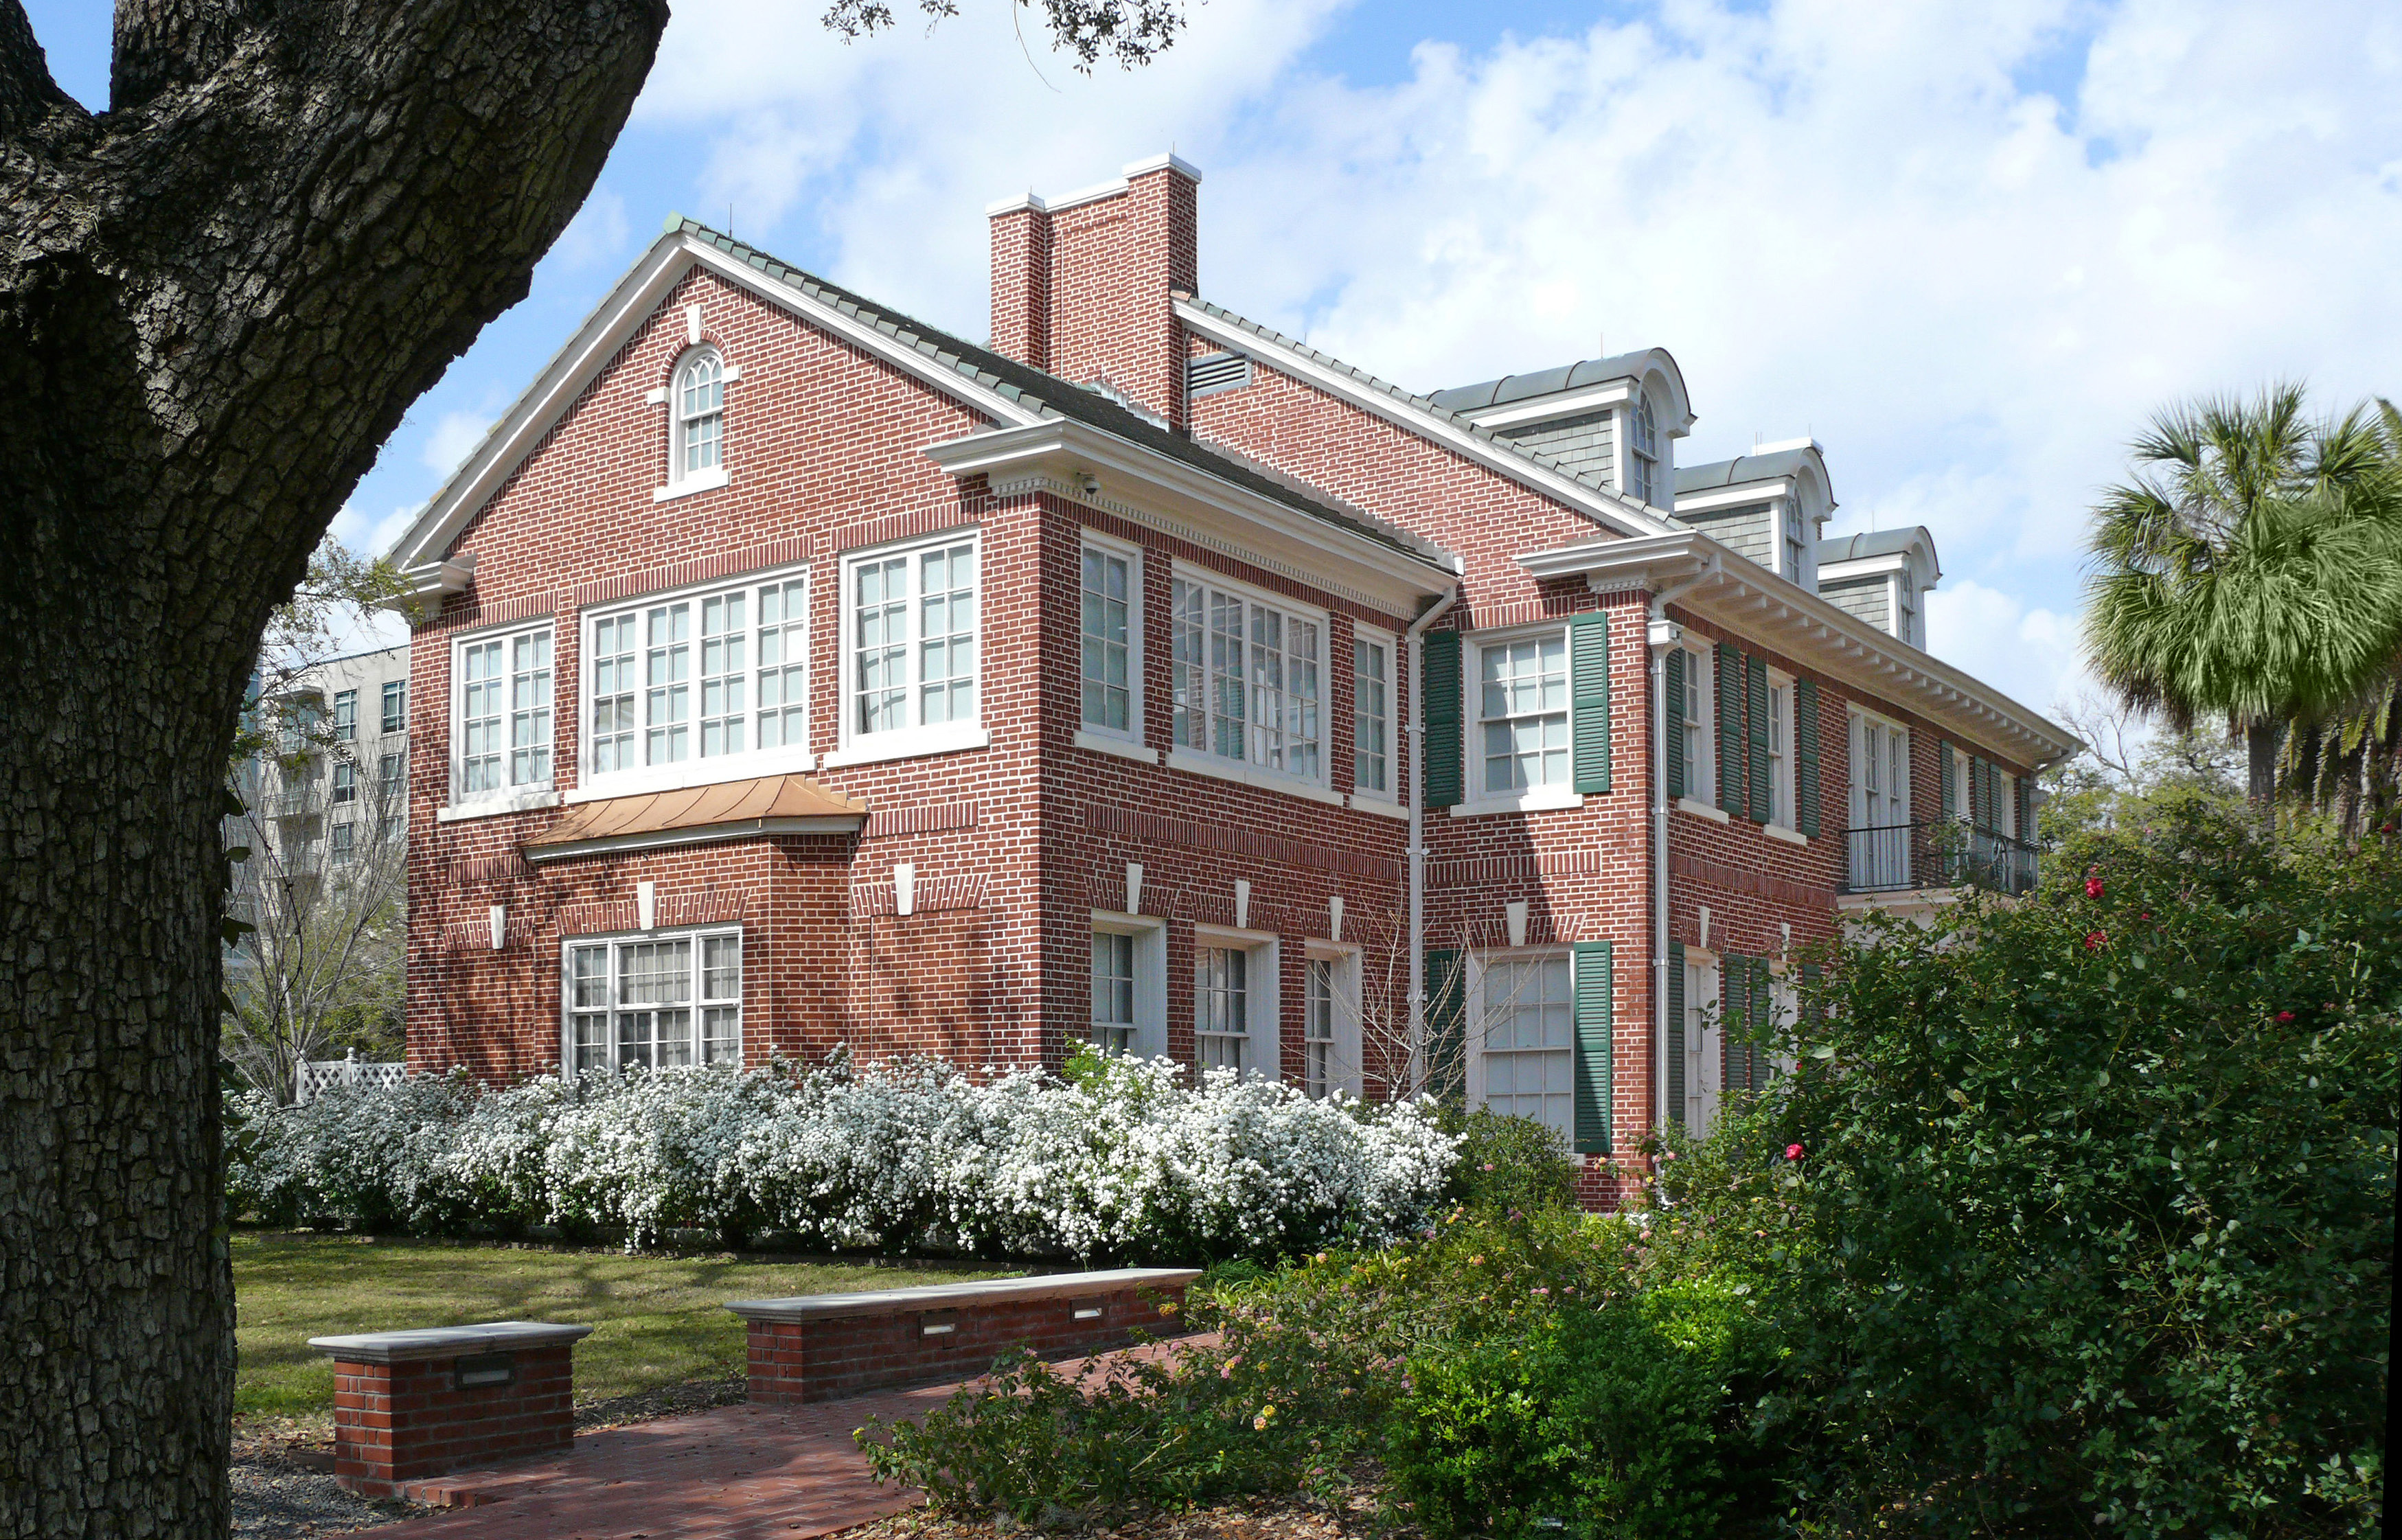 attractive clayton house #4: File:Clayton House Houstonu0027s Genealogy Library.jpg